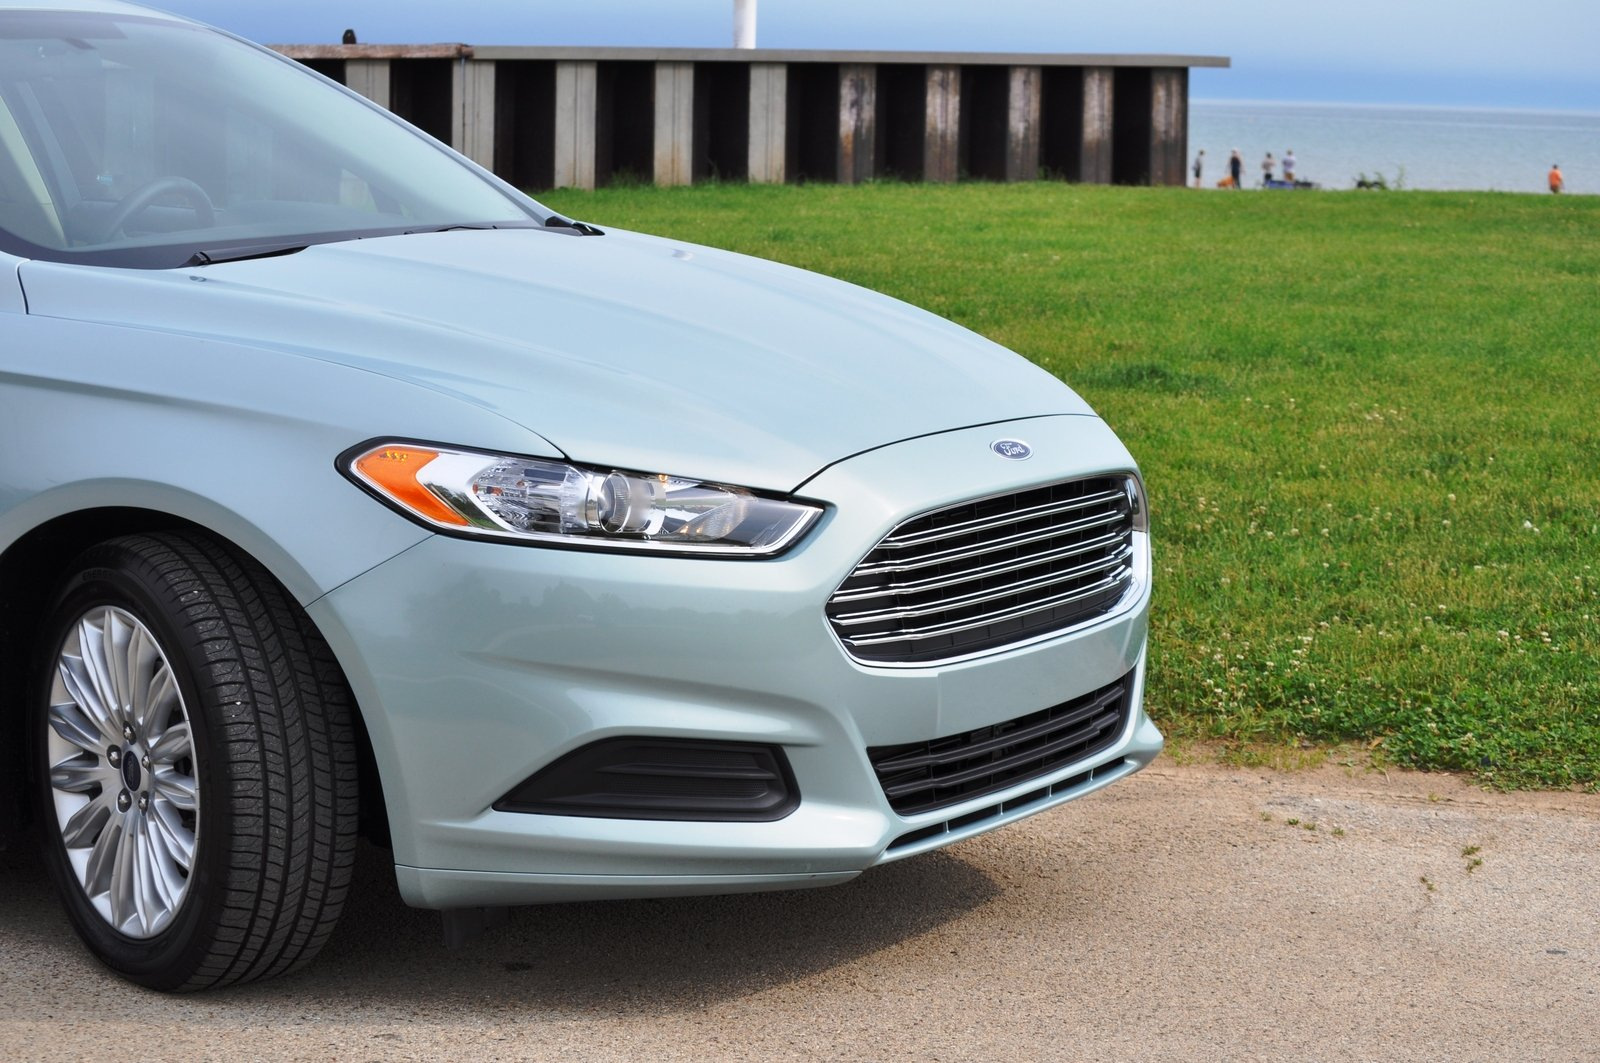 2014 ford fusion hybrid picture 512567 car review top speed. Cars Review. Best American Auto & Cars Review